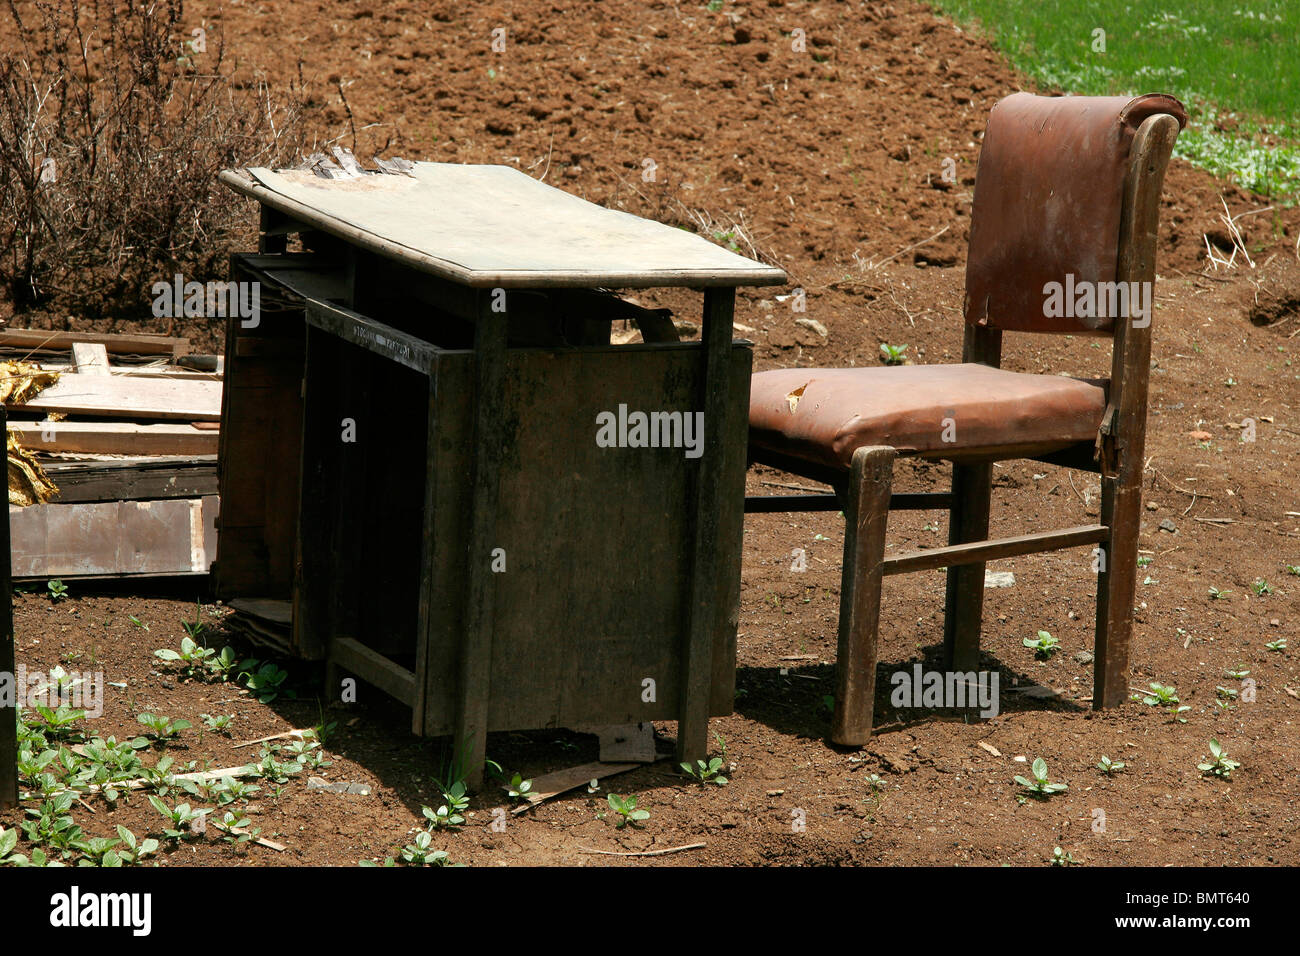 Manmade table and chair in broken stage arranged in nature - Stock Image